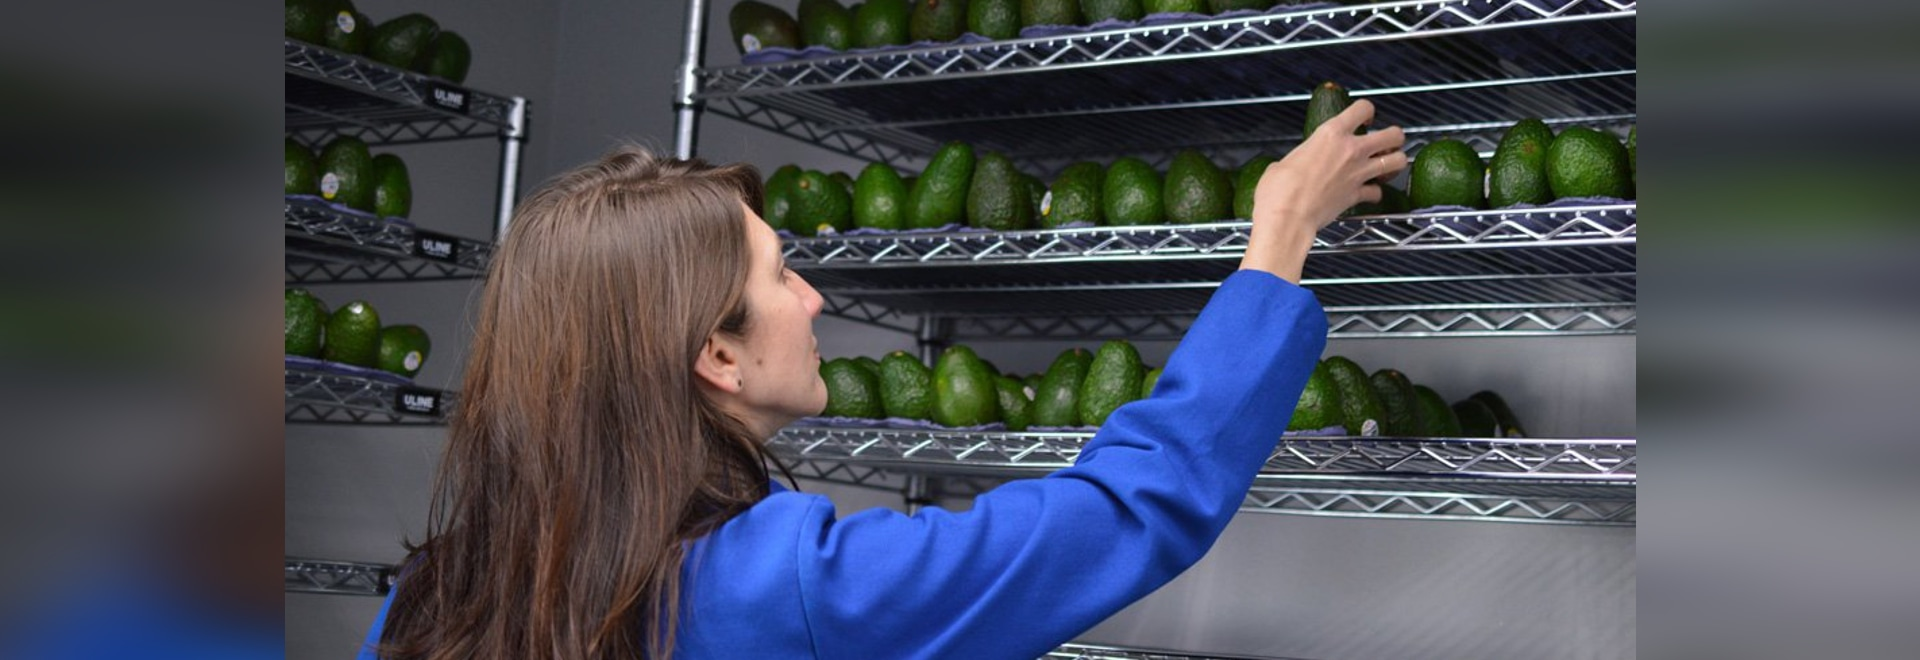 Spray this invisible, edible coating on produce and it could last five times longer